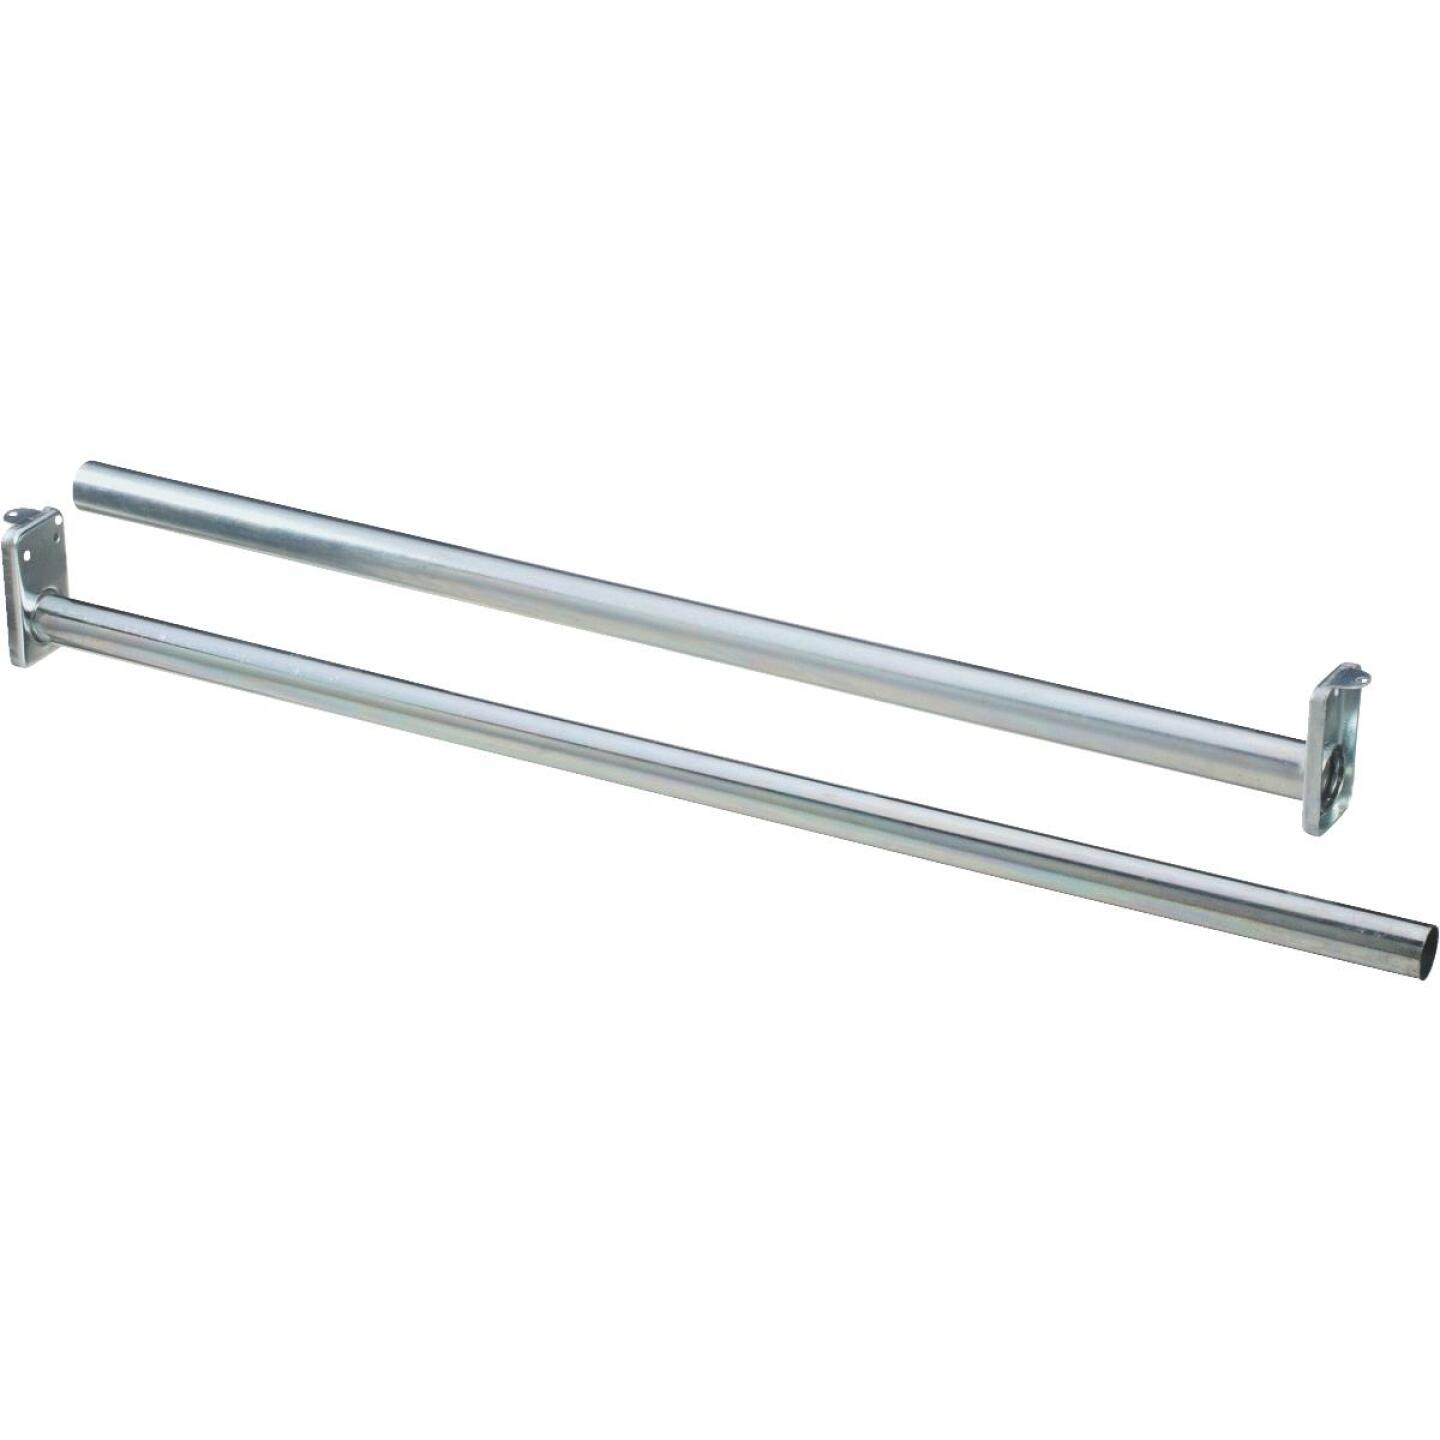 Stanley National 48 In. To 72 In. Adjustable Closet Rod, Bright Steel Image 1